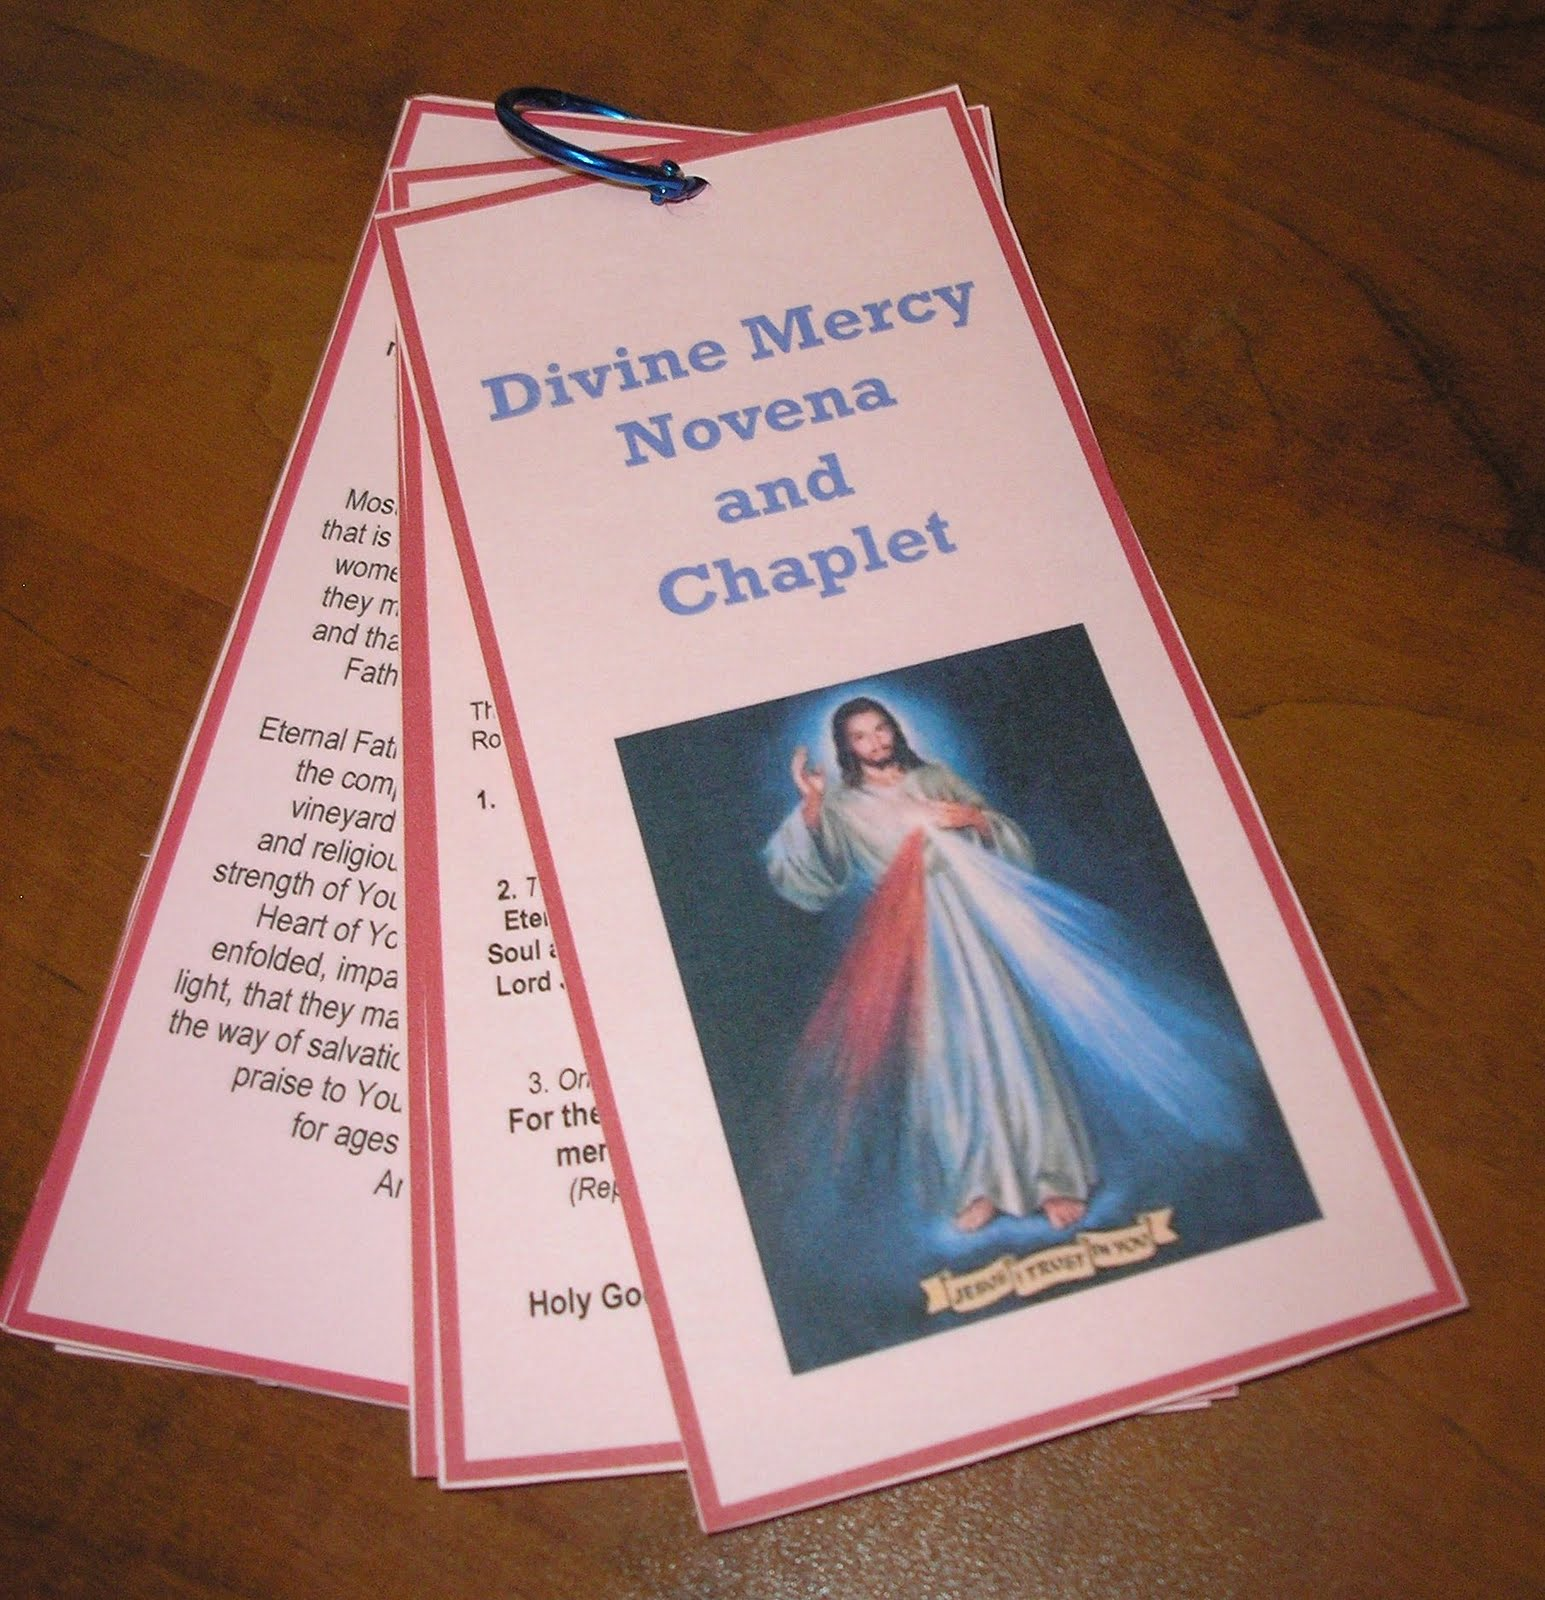 graphic relating to Divine Mercy Chaplet Printable referred to as The Diary of a Sower: Divine Mercy Novena and Chaplet